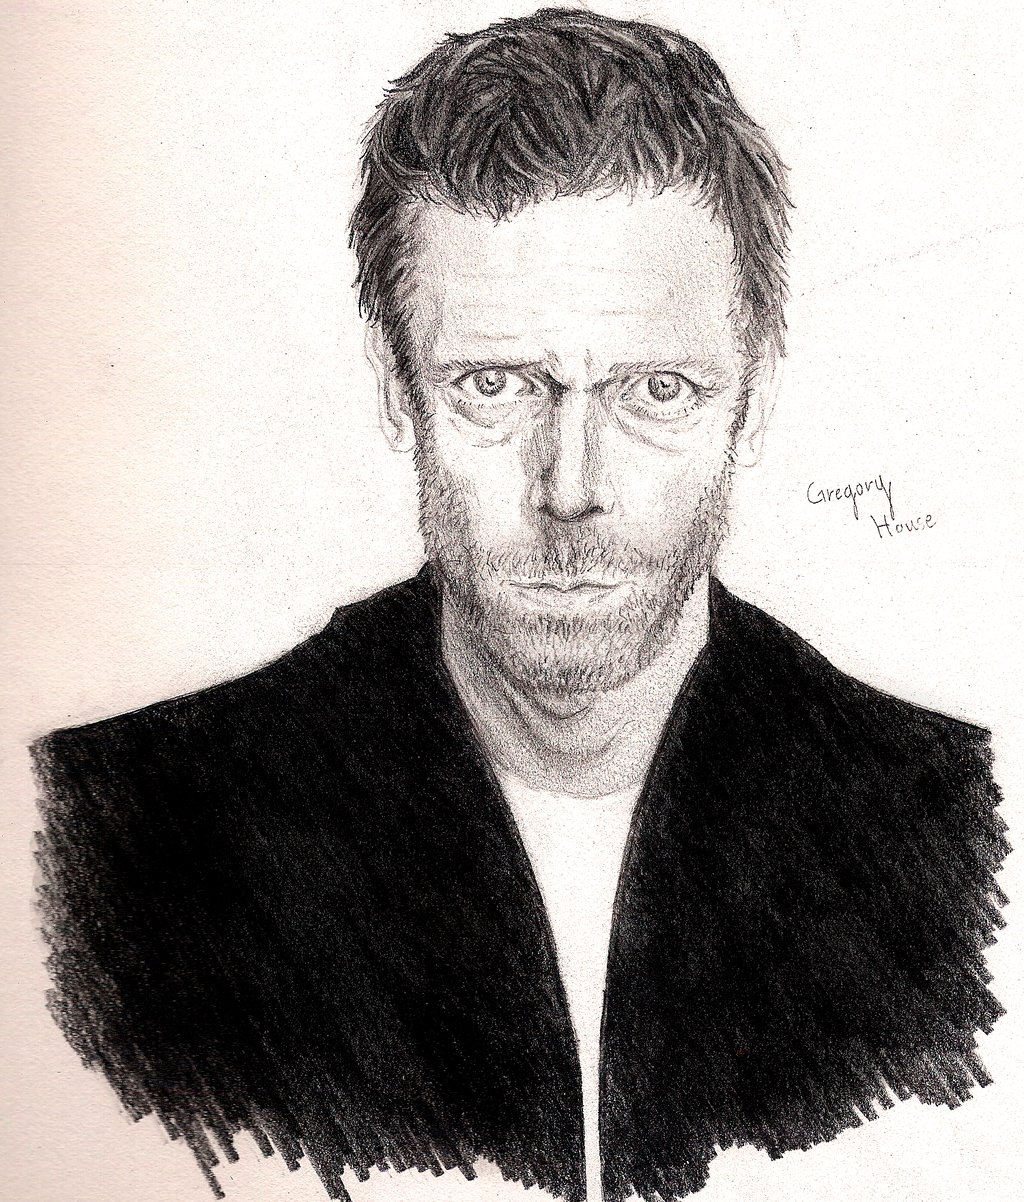 Gregory house by hellsfire on deviantart for Minimal art gregory battcock